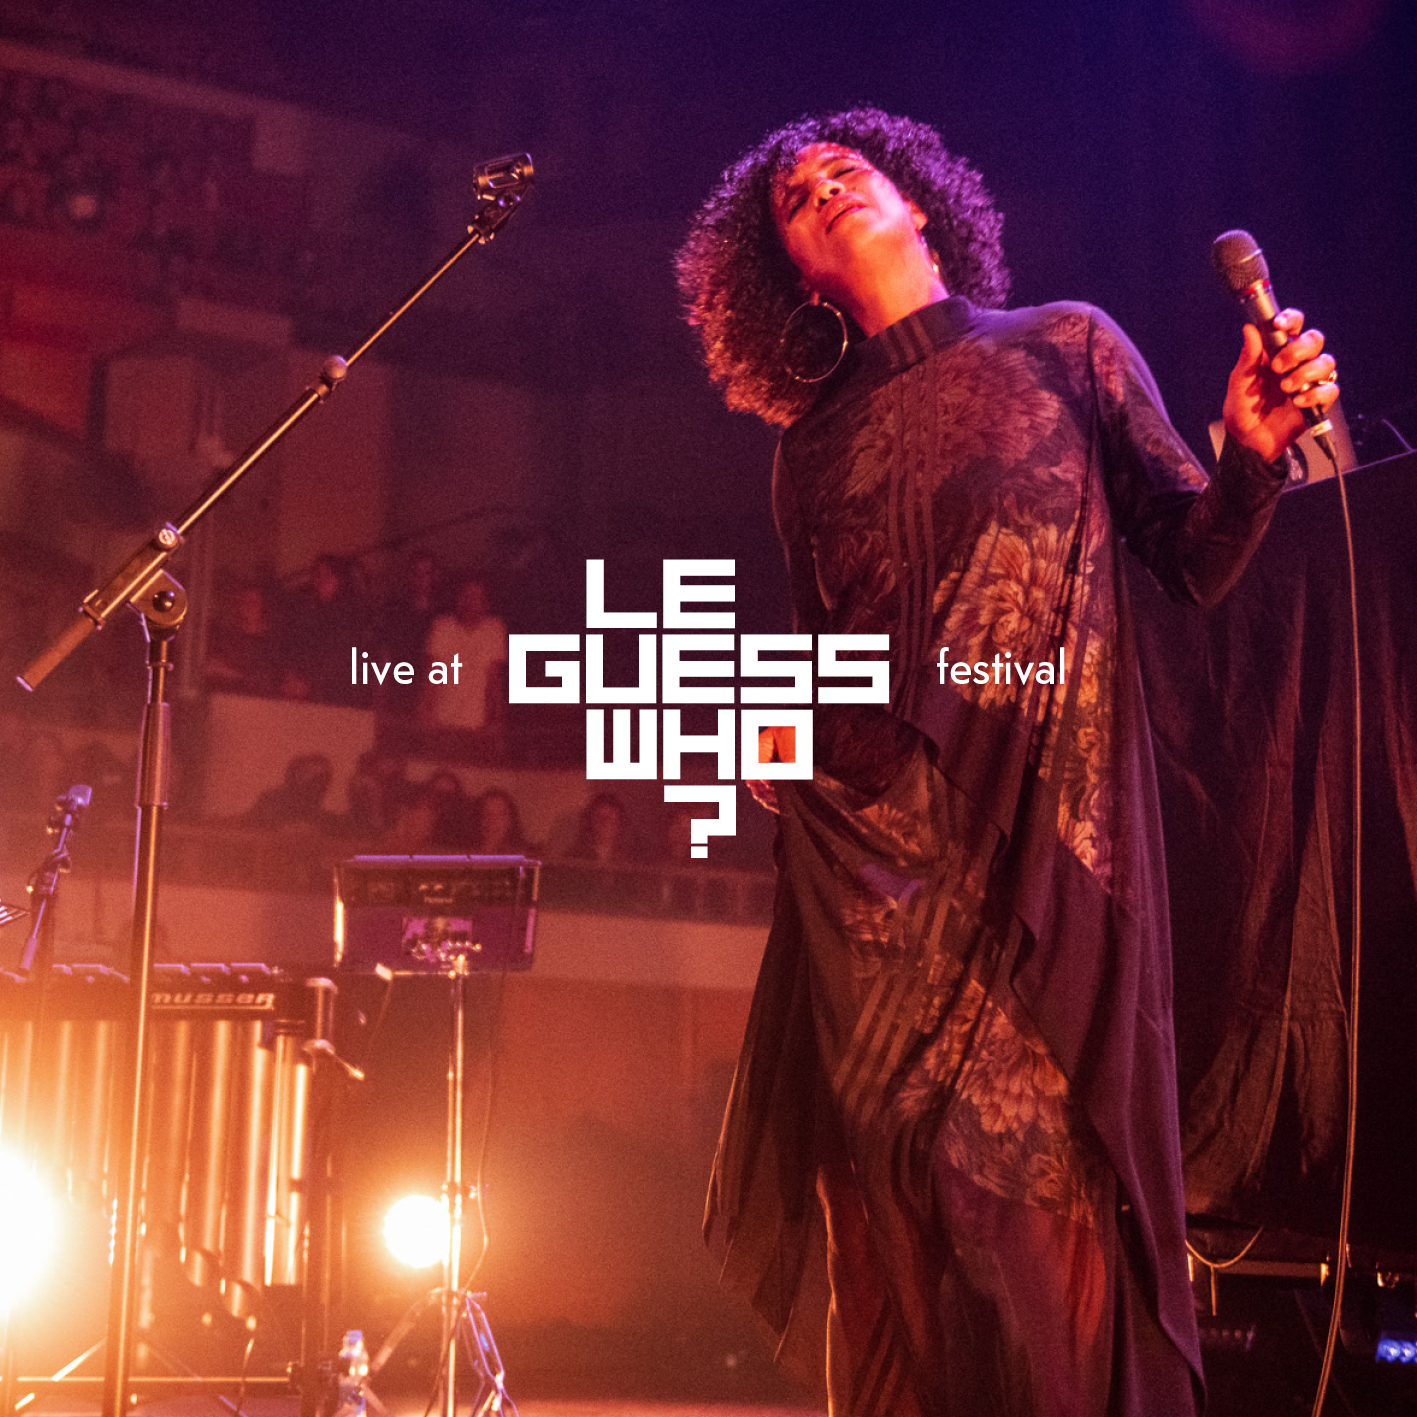 Watch + listen: Neneh Cherry live at Le Guess Who? 2018, performing tracks from 'Broken Politics'